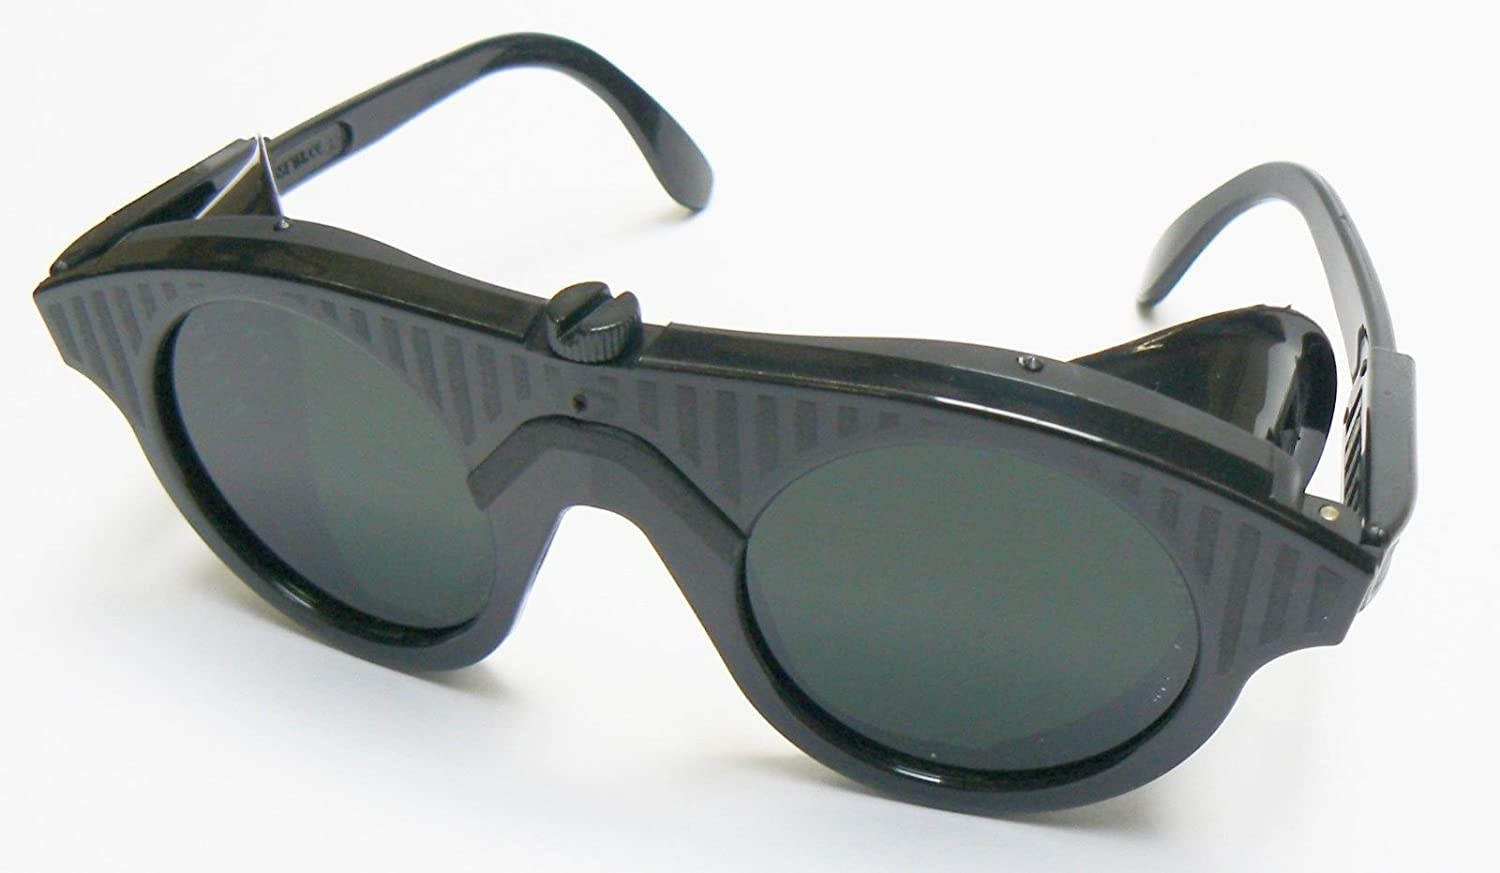 385e63626b Amazon.com  SAFETY GLASSES PROTECTIVE GLASSES SHADE 10 GOGGLES FOR MELTING    SOLDERING (E 5)  Beauty